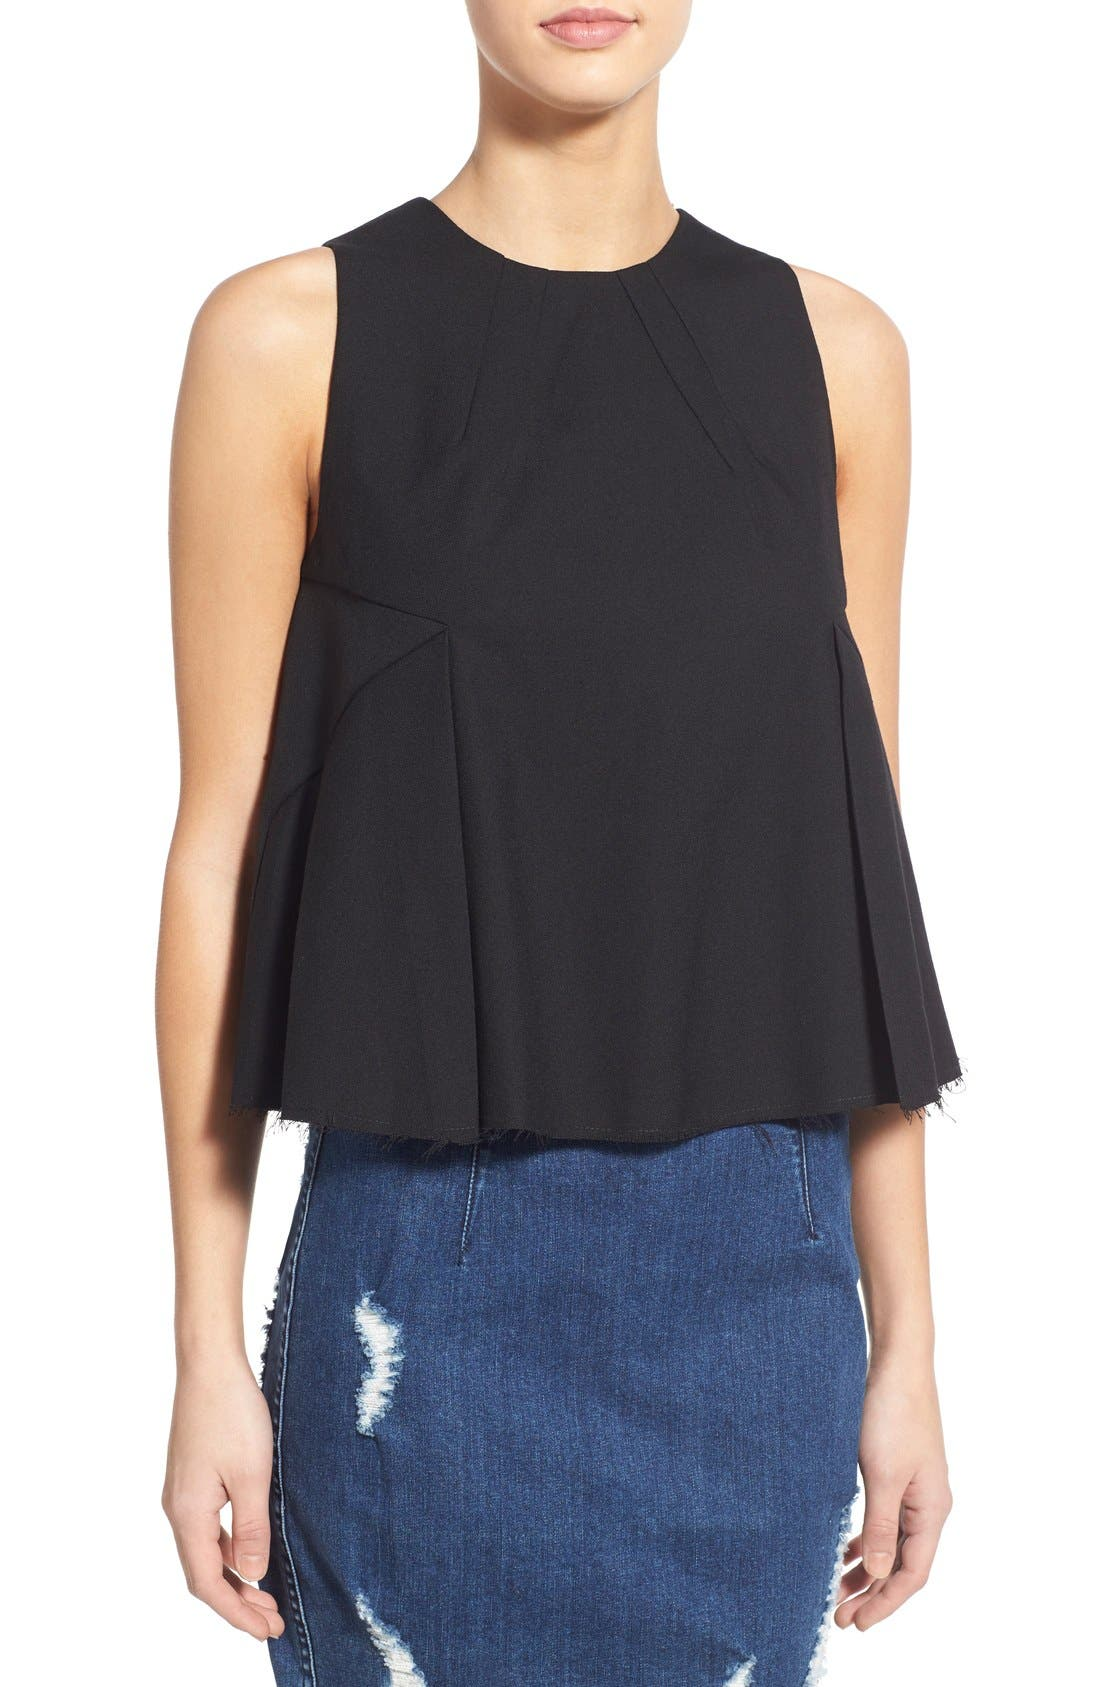 Alternate Image 1 Selected - KENDALL + KYLIE Raw Edge Tank